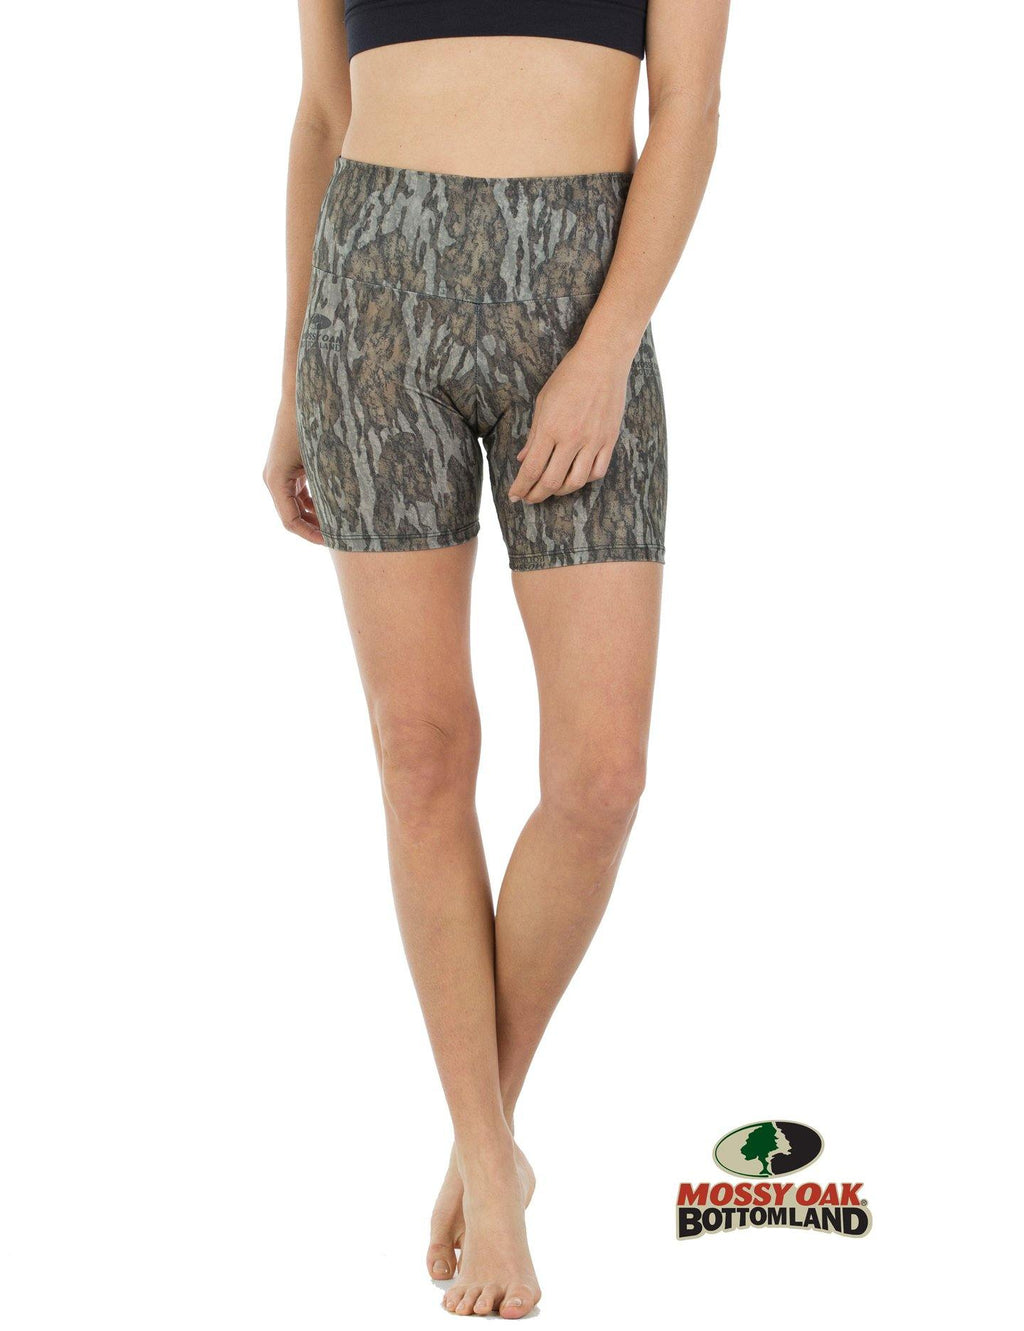 Apsara Shorts High Waist, Mossy Oak Bottomland